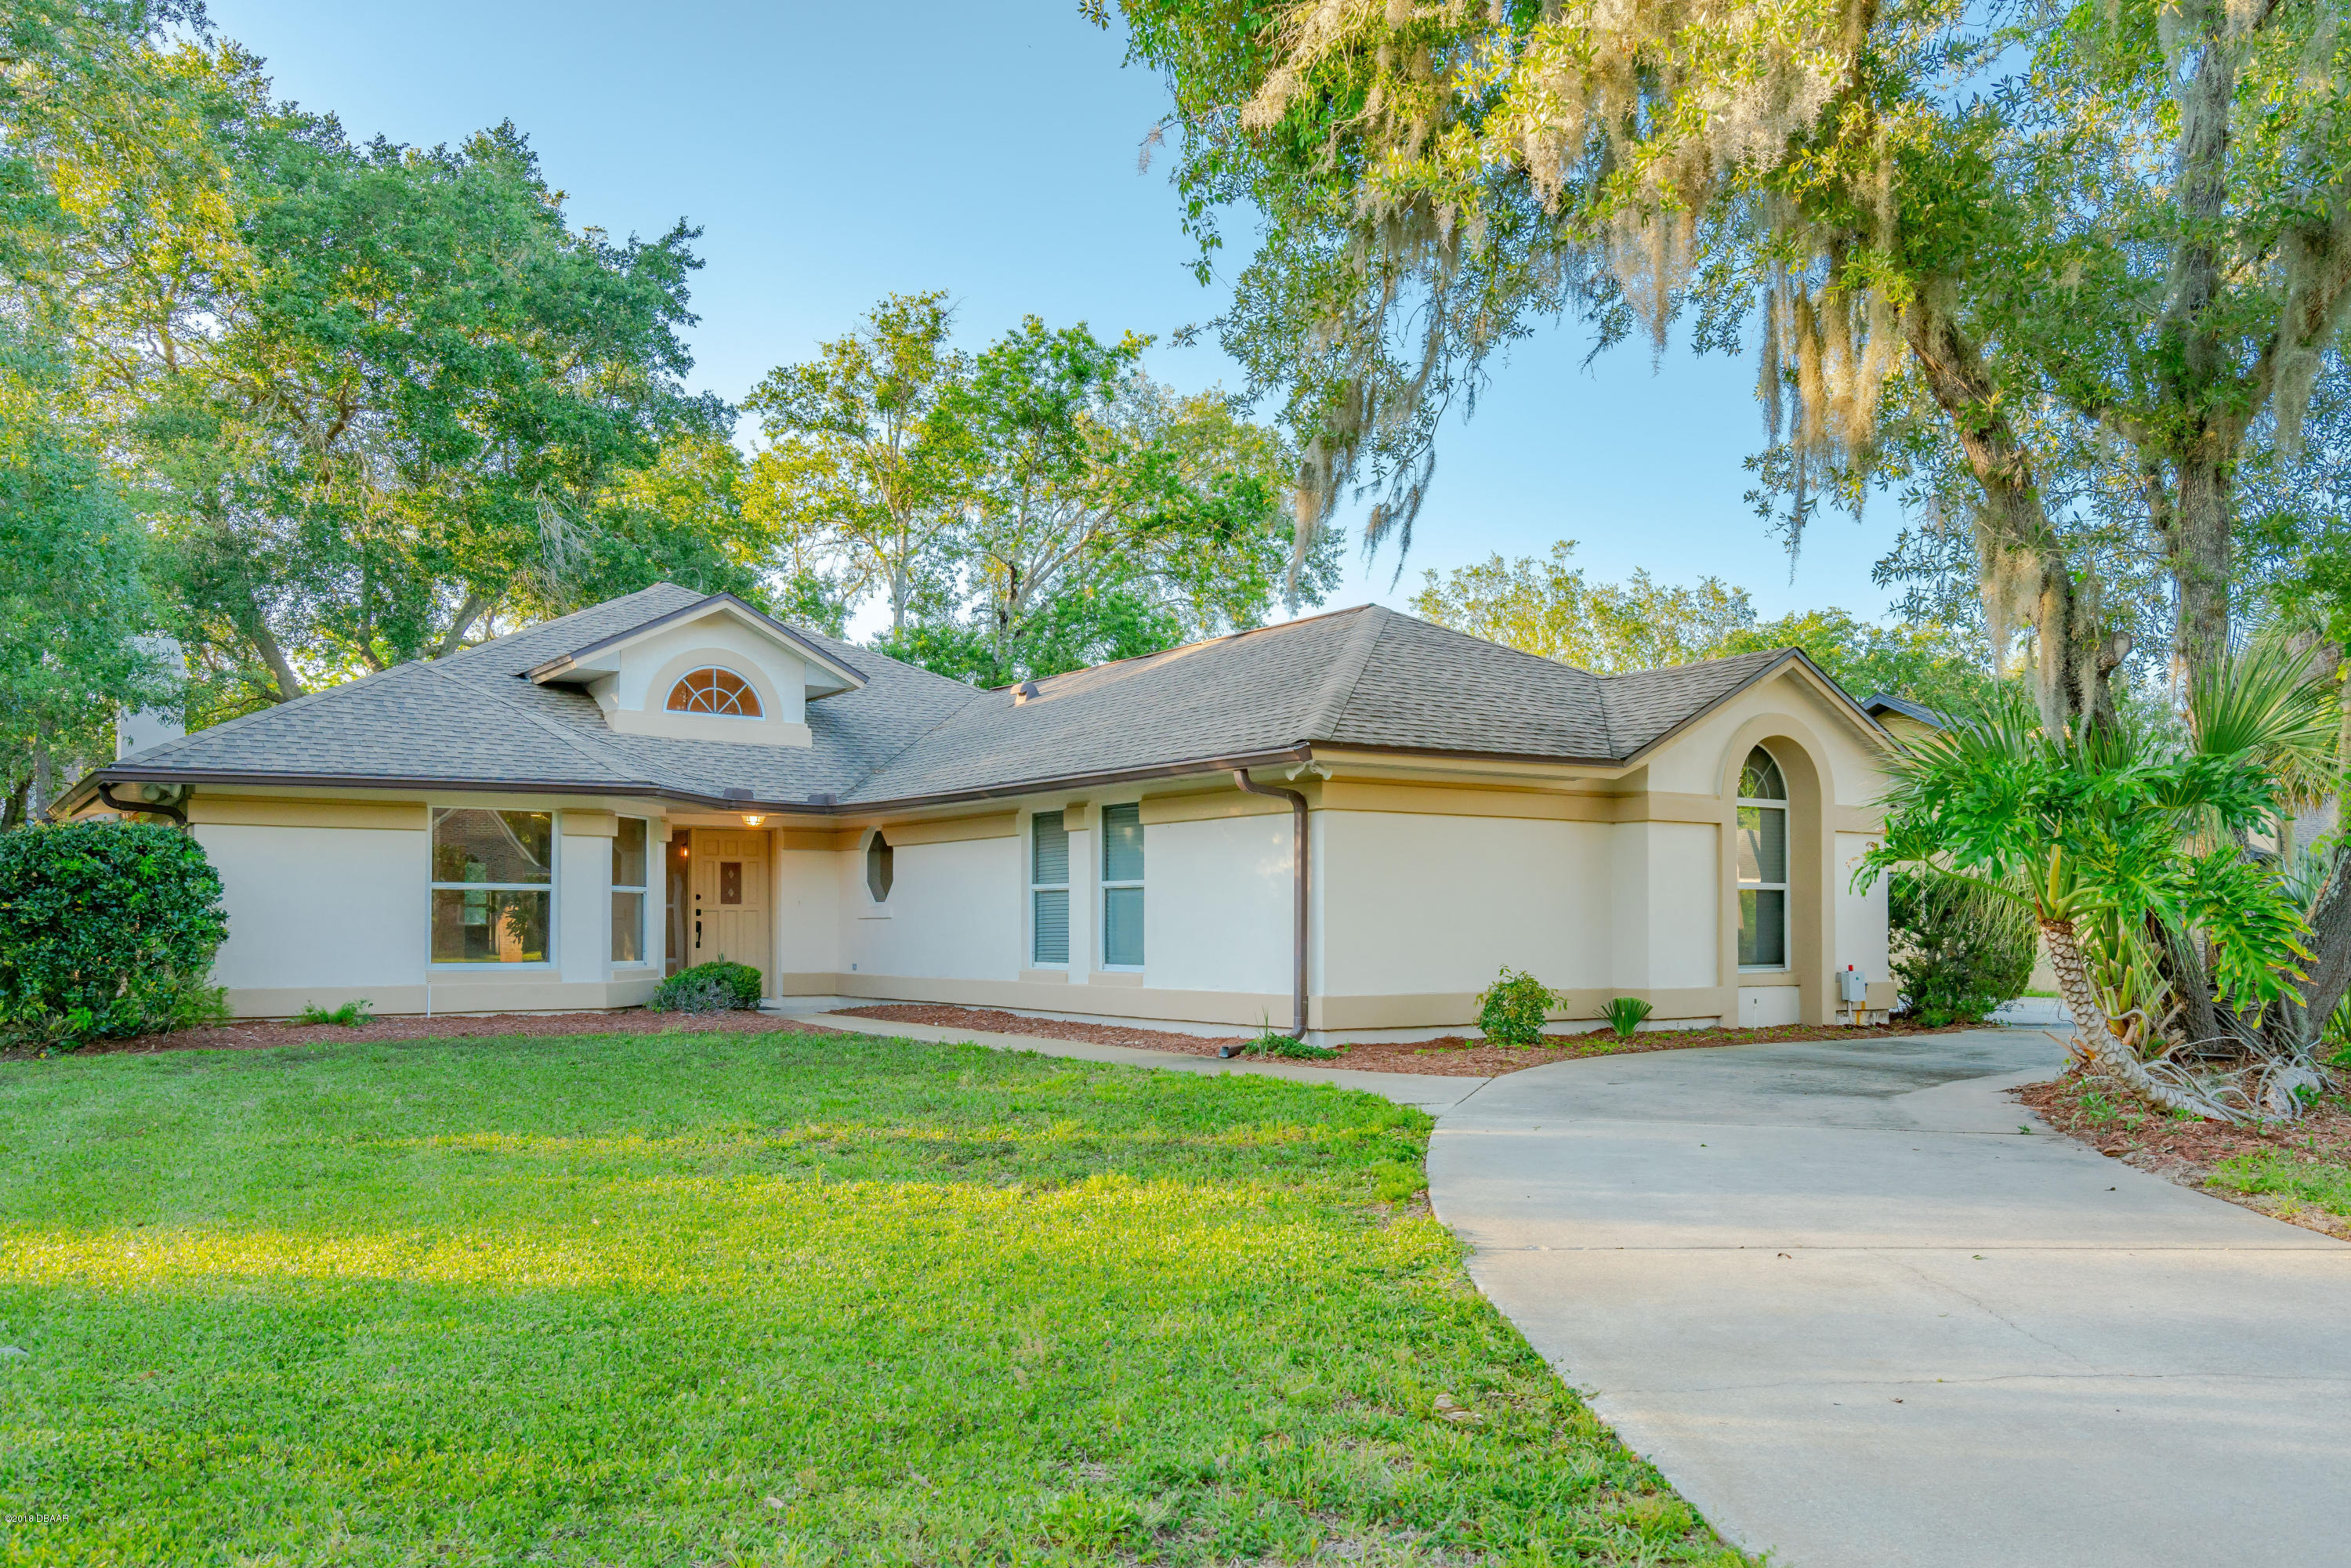 3 bed / 2 baths Home in Ormond Beach for $299,000